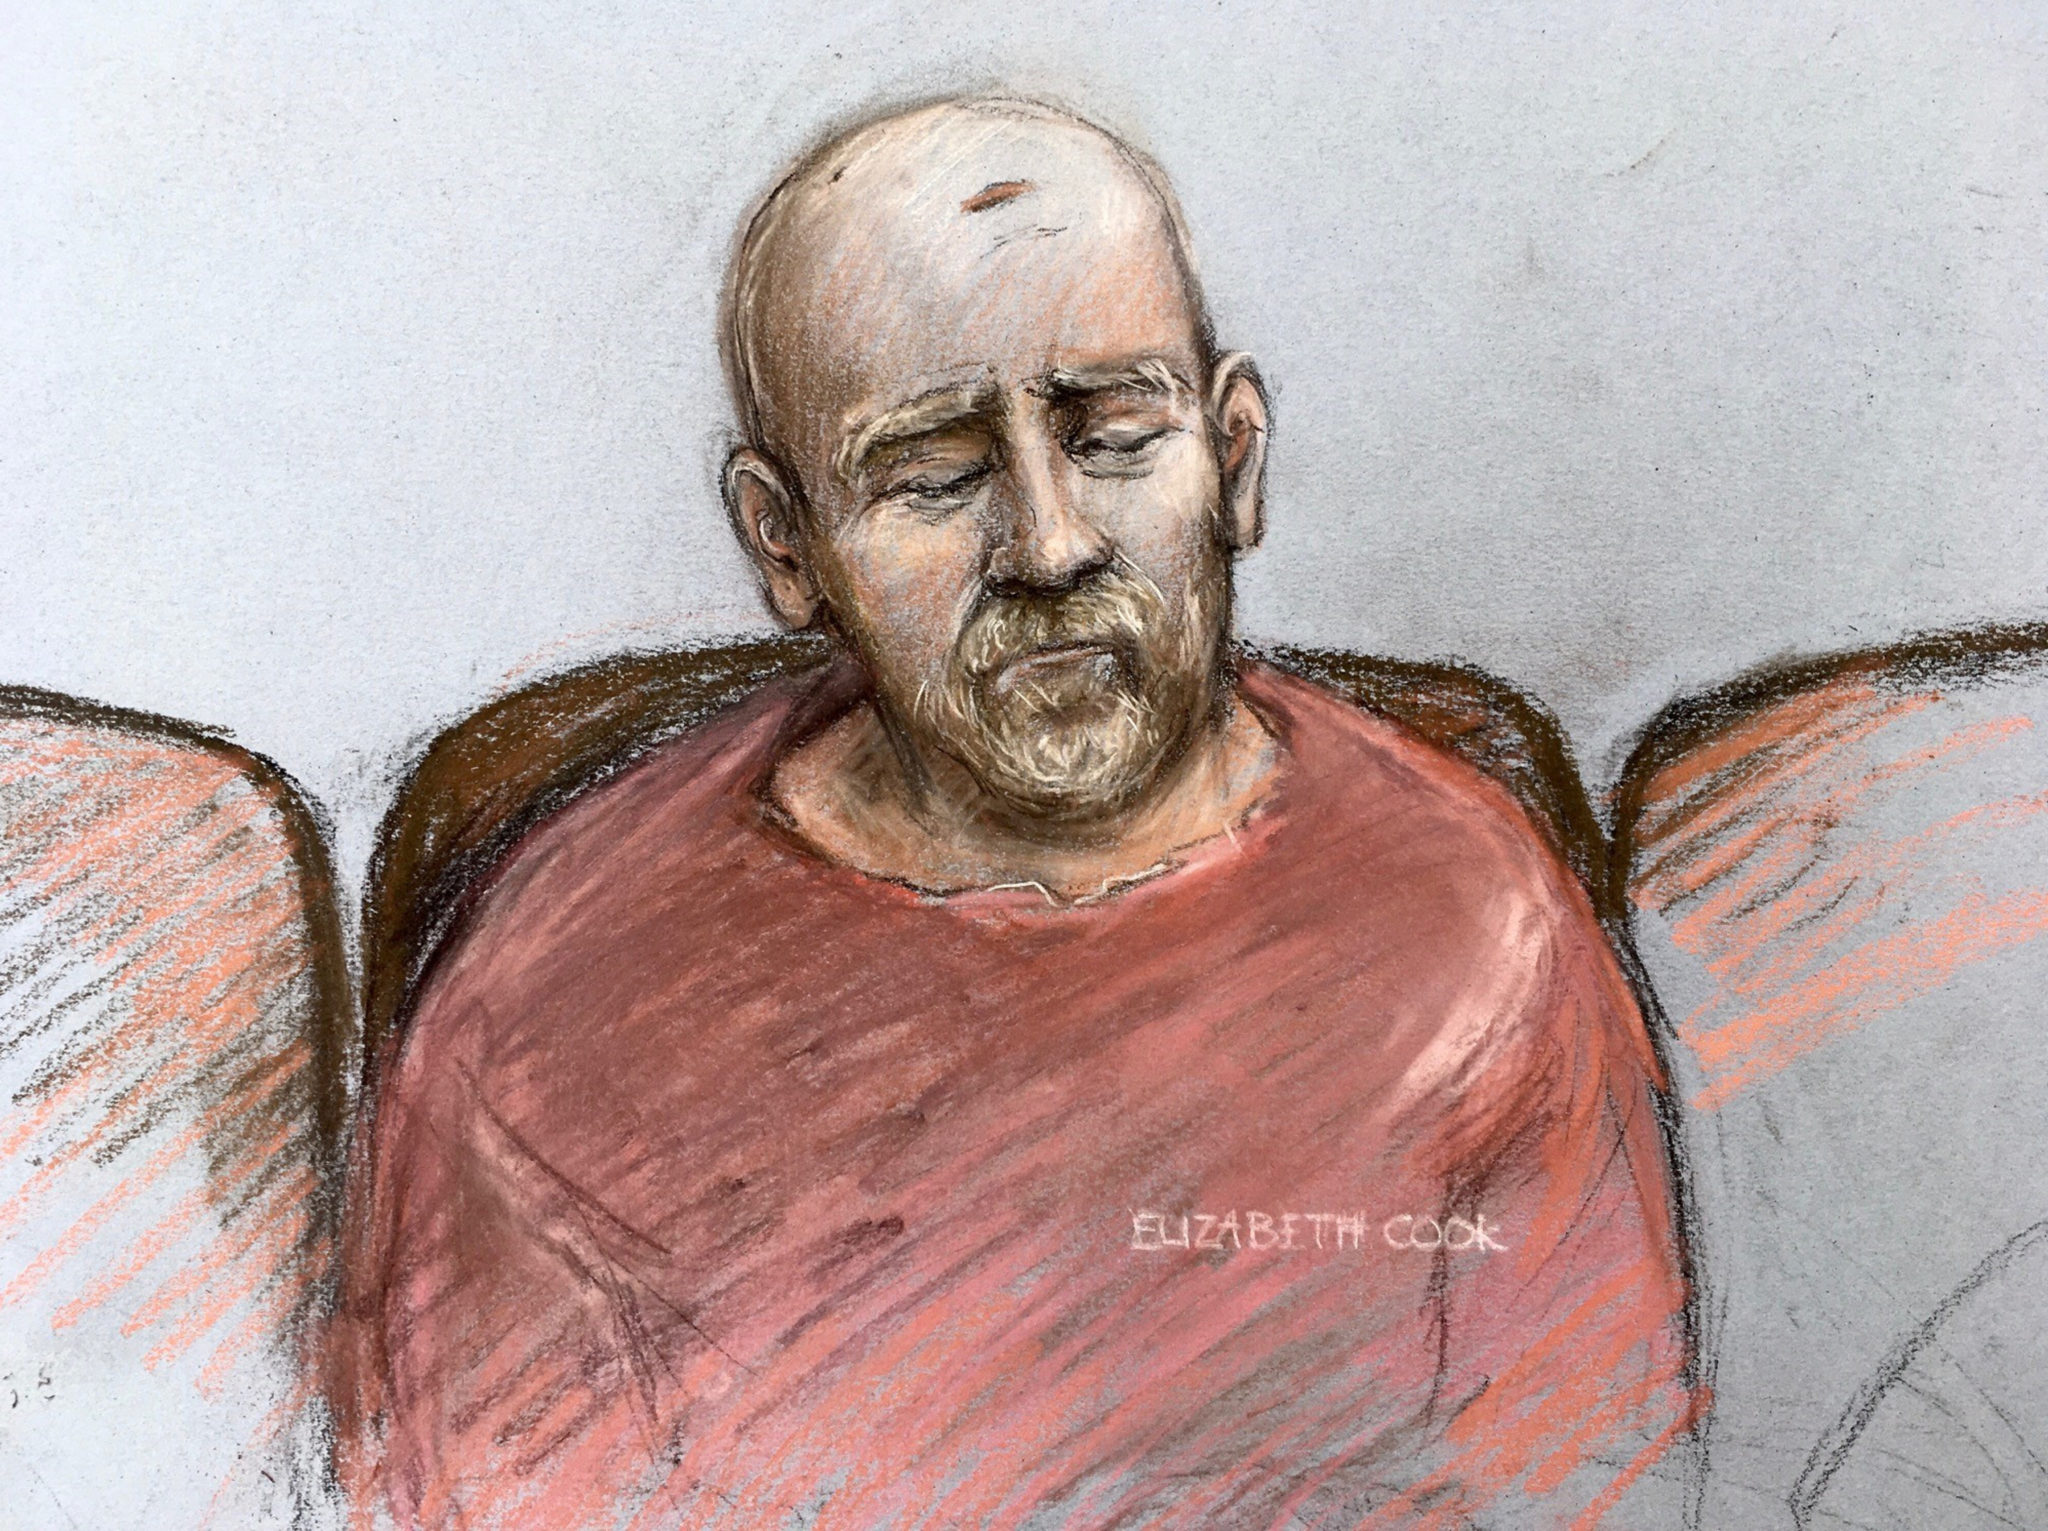 File photo of a court artist sketch by Elizabeth Cook of Wayne Couzens, making his first appearance at the Old Bailey in London, England by video link from jail.